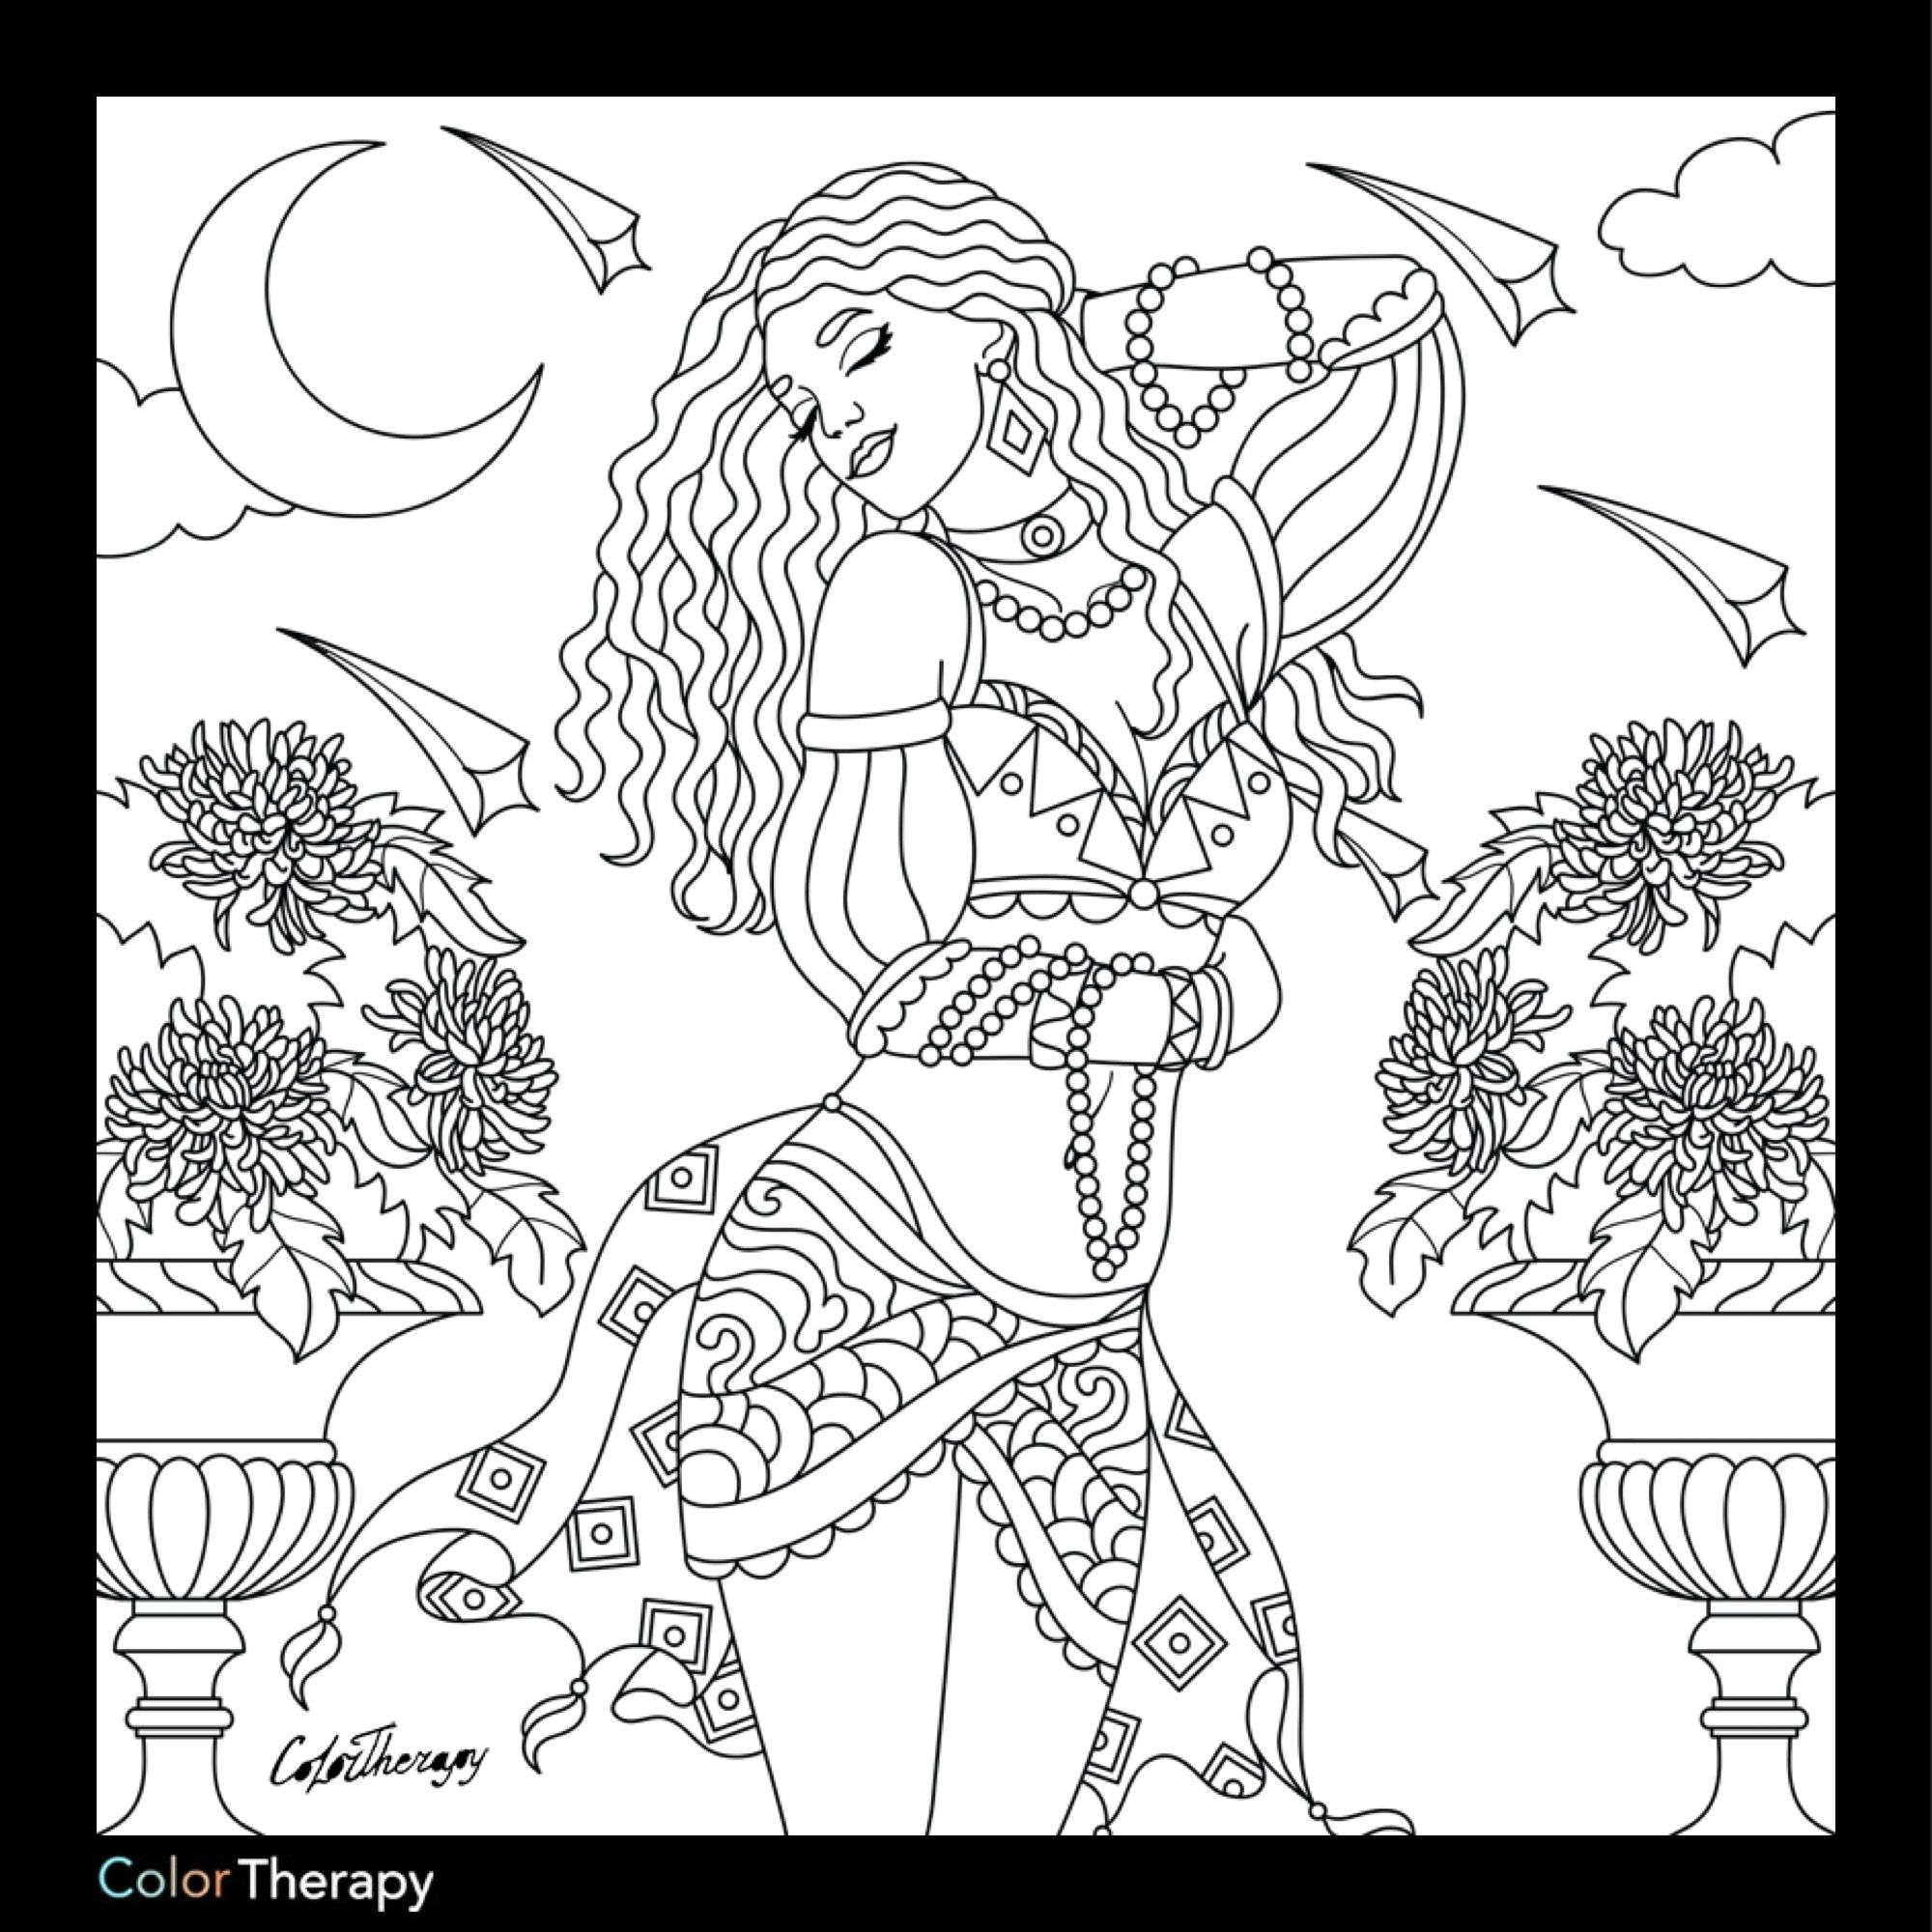 Adult Coloring Pages, Coloring Sheets, Coloring Books, Craft Patterns, Paper  Crafts, Printable, Doodle, Mandala, Stitches